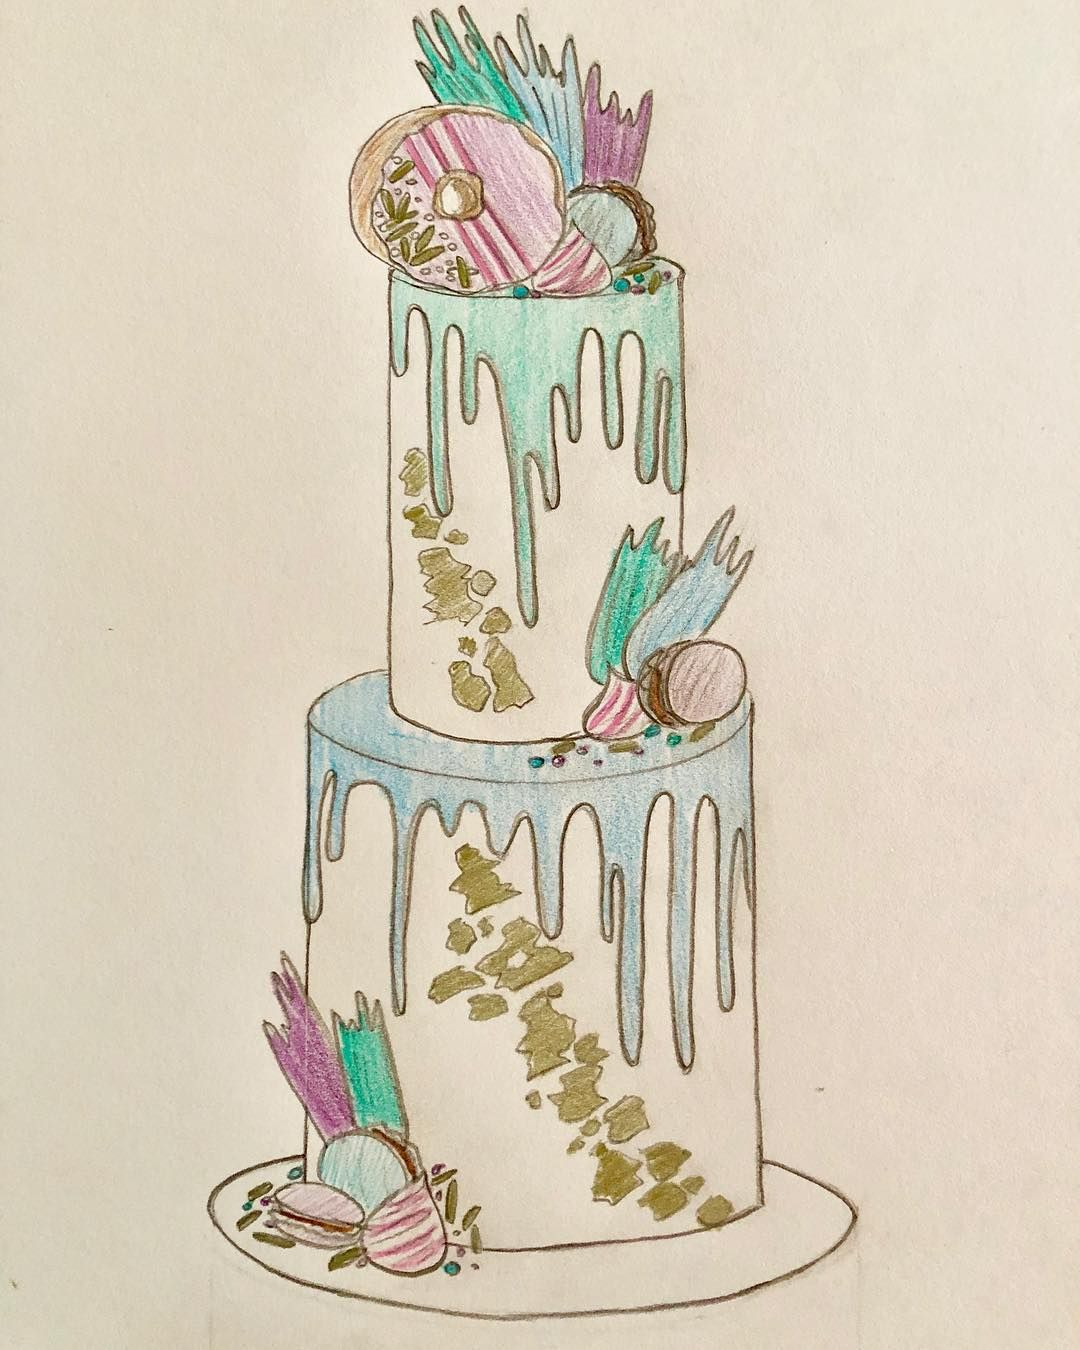 Pin By Amy Newnham On Dean Cake Ideas Cake Sketch Wedding Cake Illustrations Cake Sketch Drawings